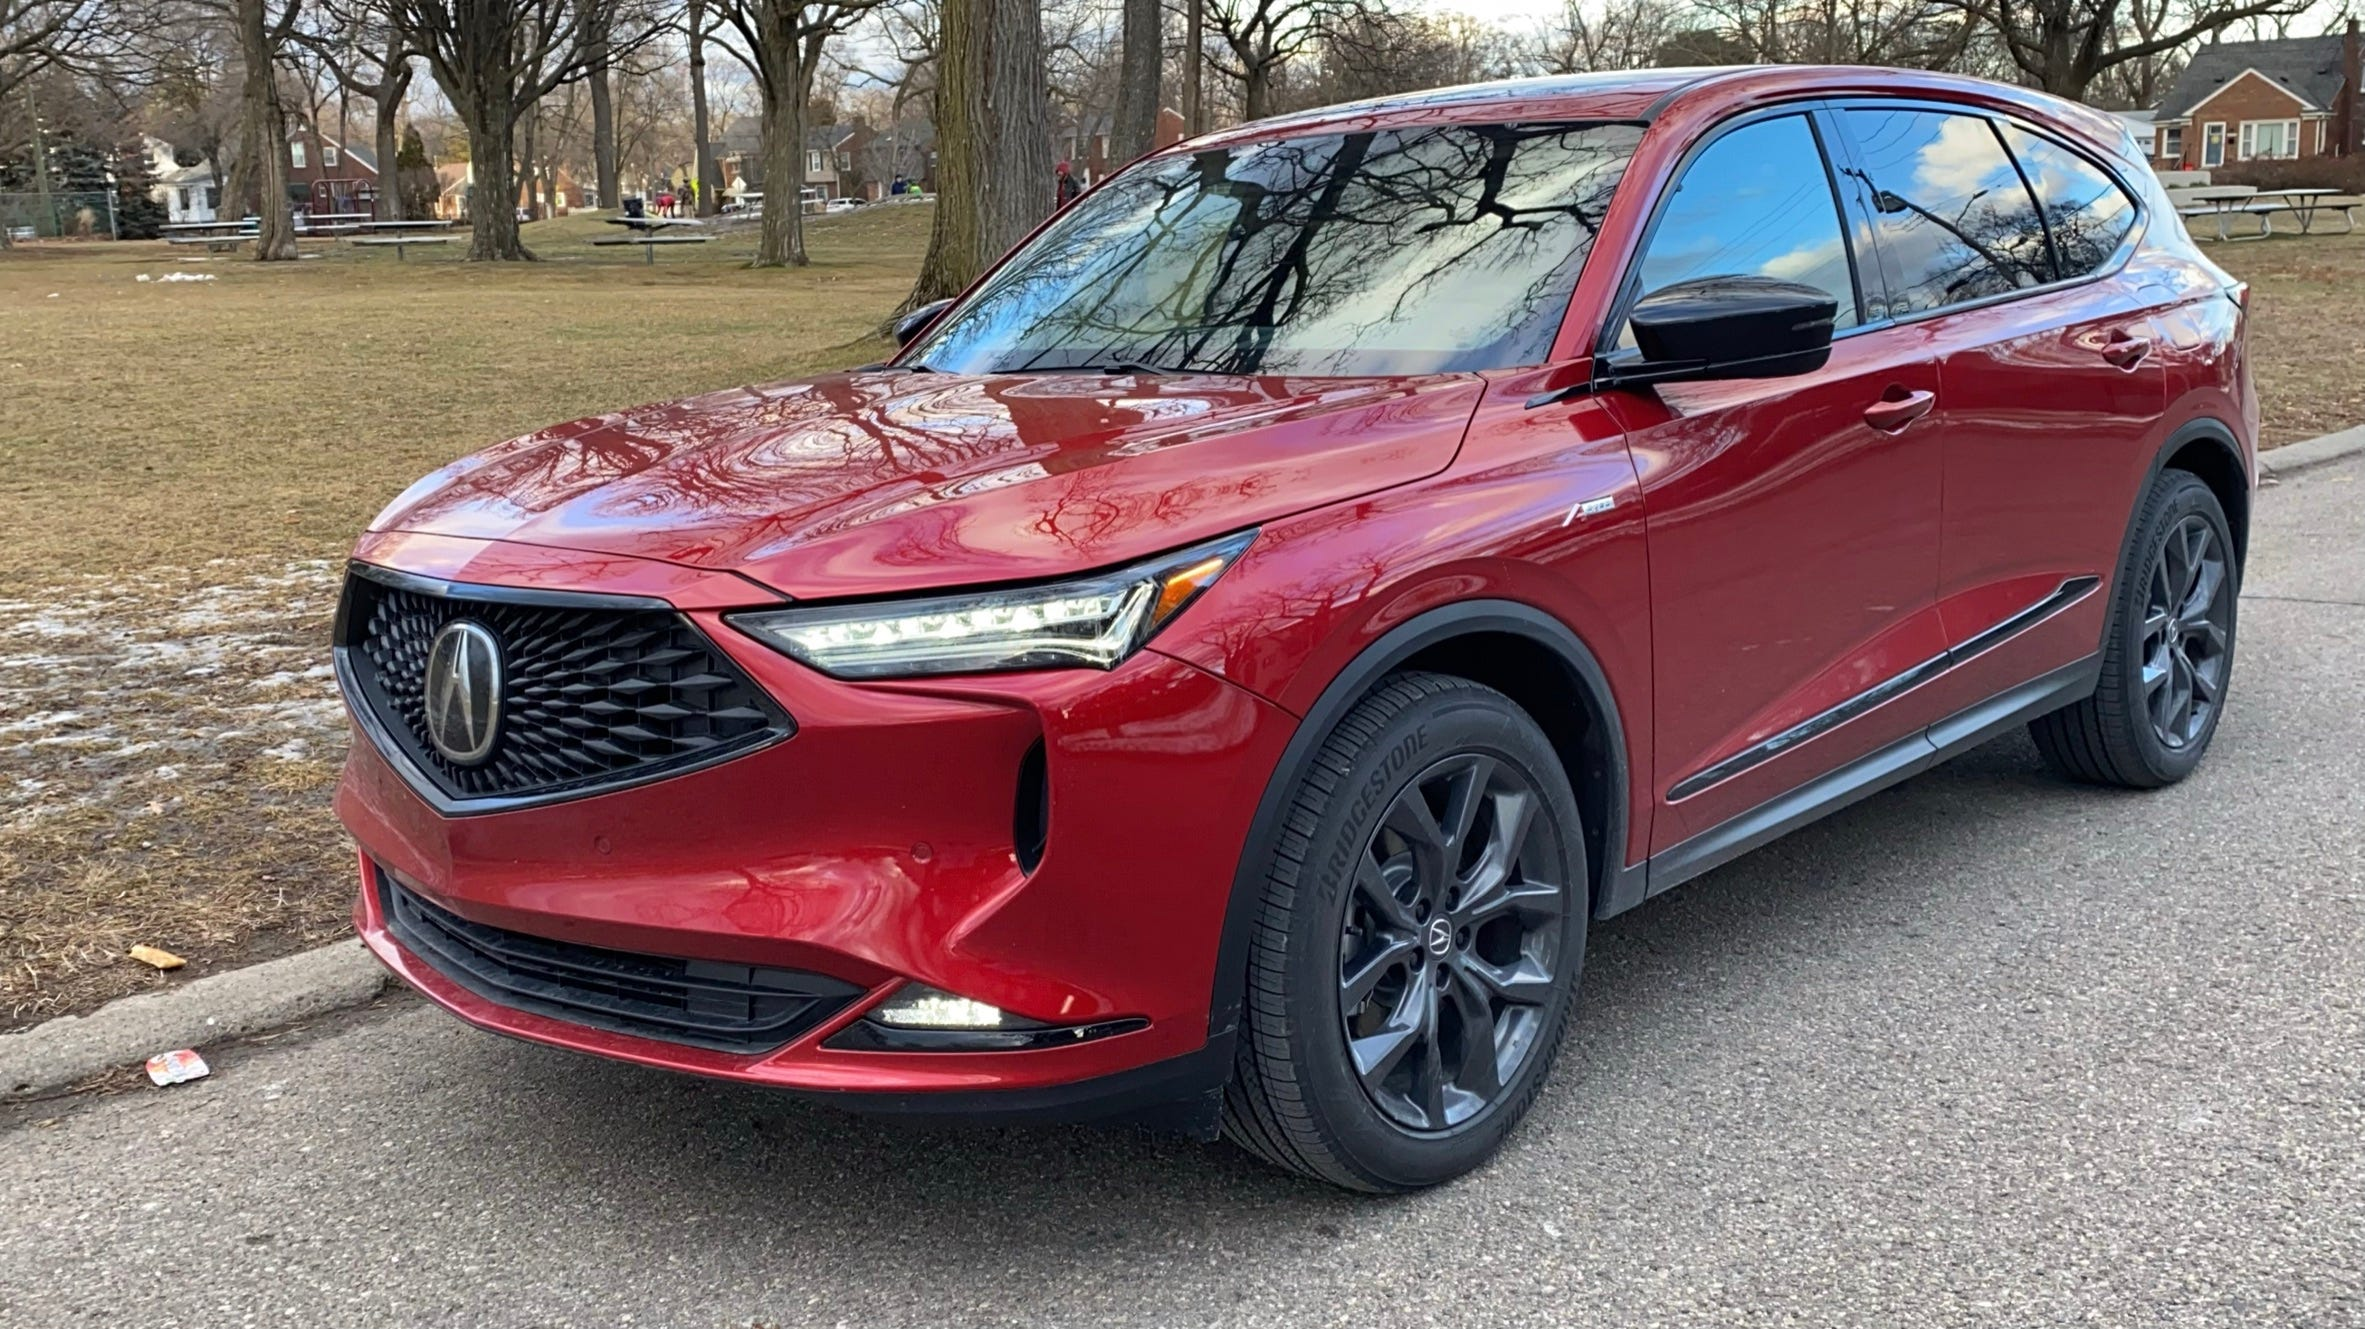 Acura s sleek and sporty 2022 MDX gets luxury brand s SUV back on track